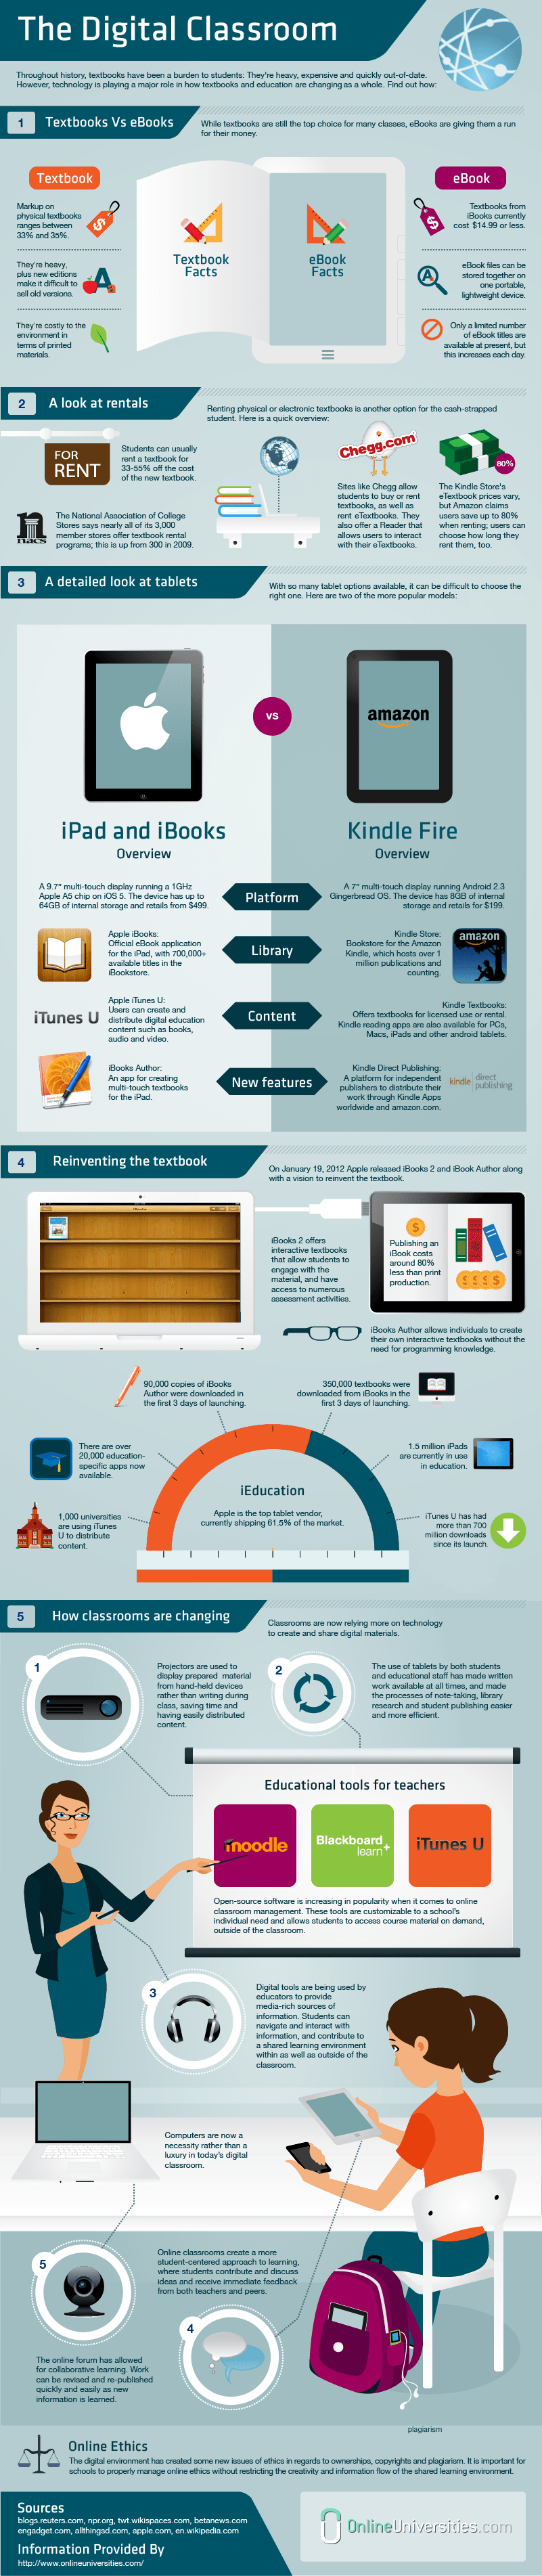 Digital Classroom Infographic